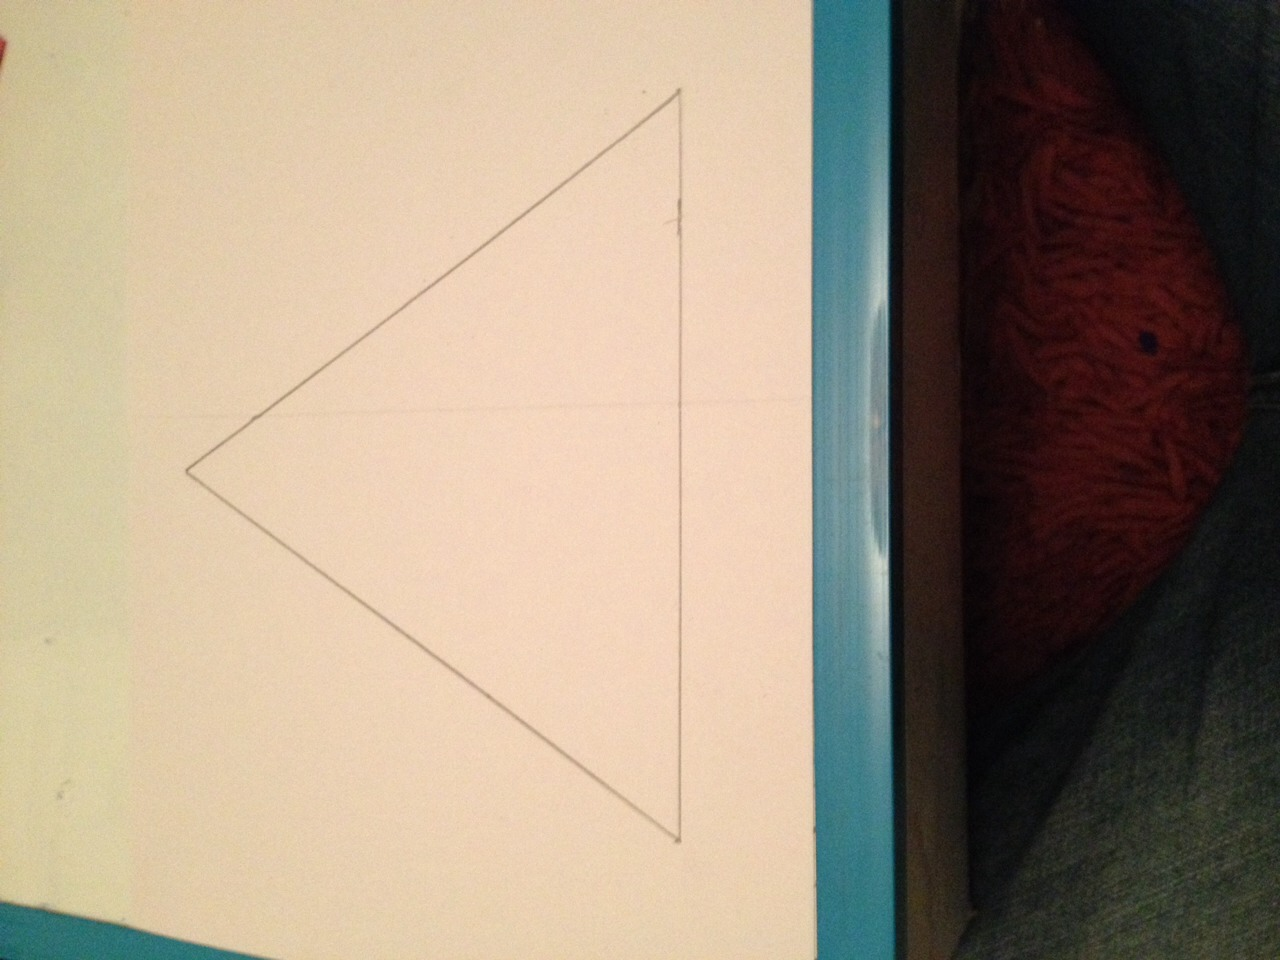 Draw an equilateral triangle